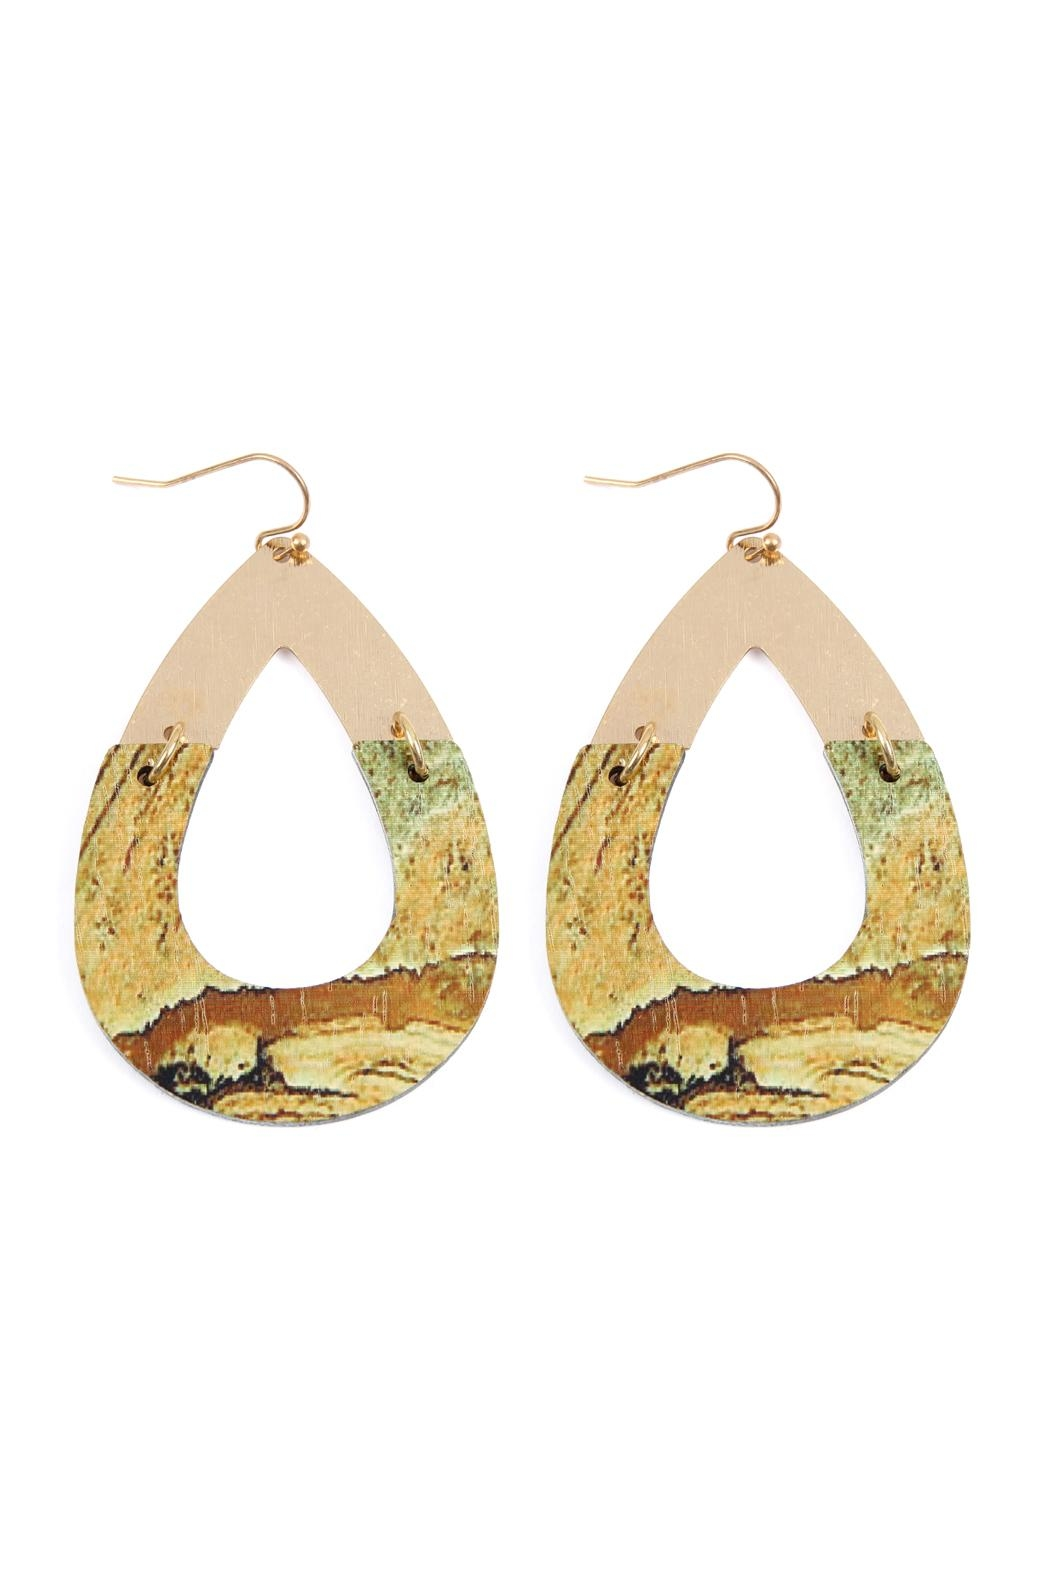 Riah Fashion Metal-Semiwood Open-Cut-Fish Hook-Teardrop-Earrings - Main Image